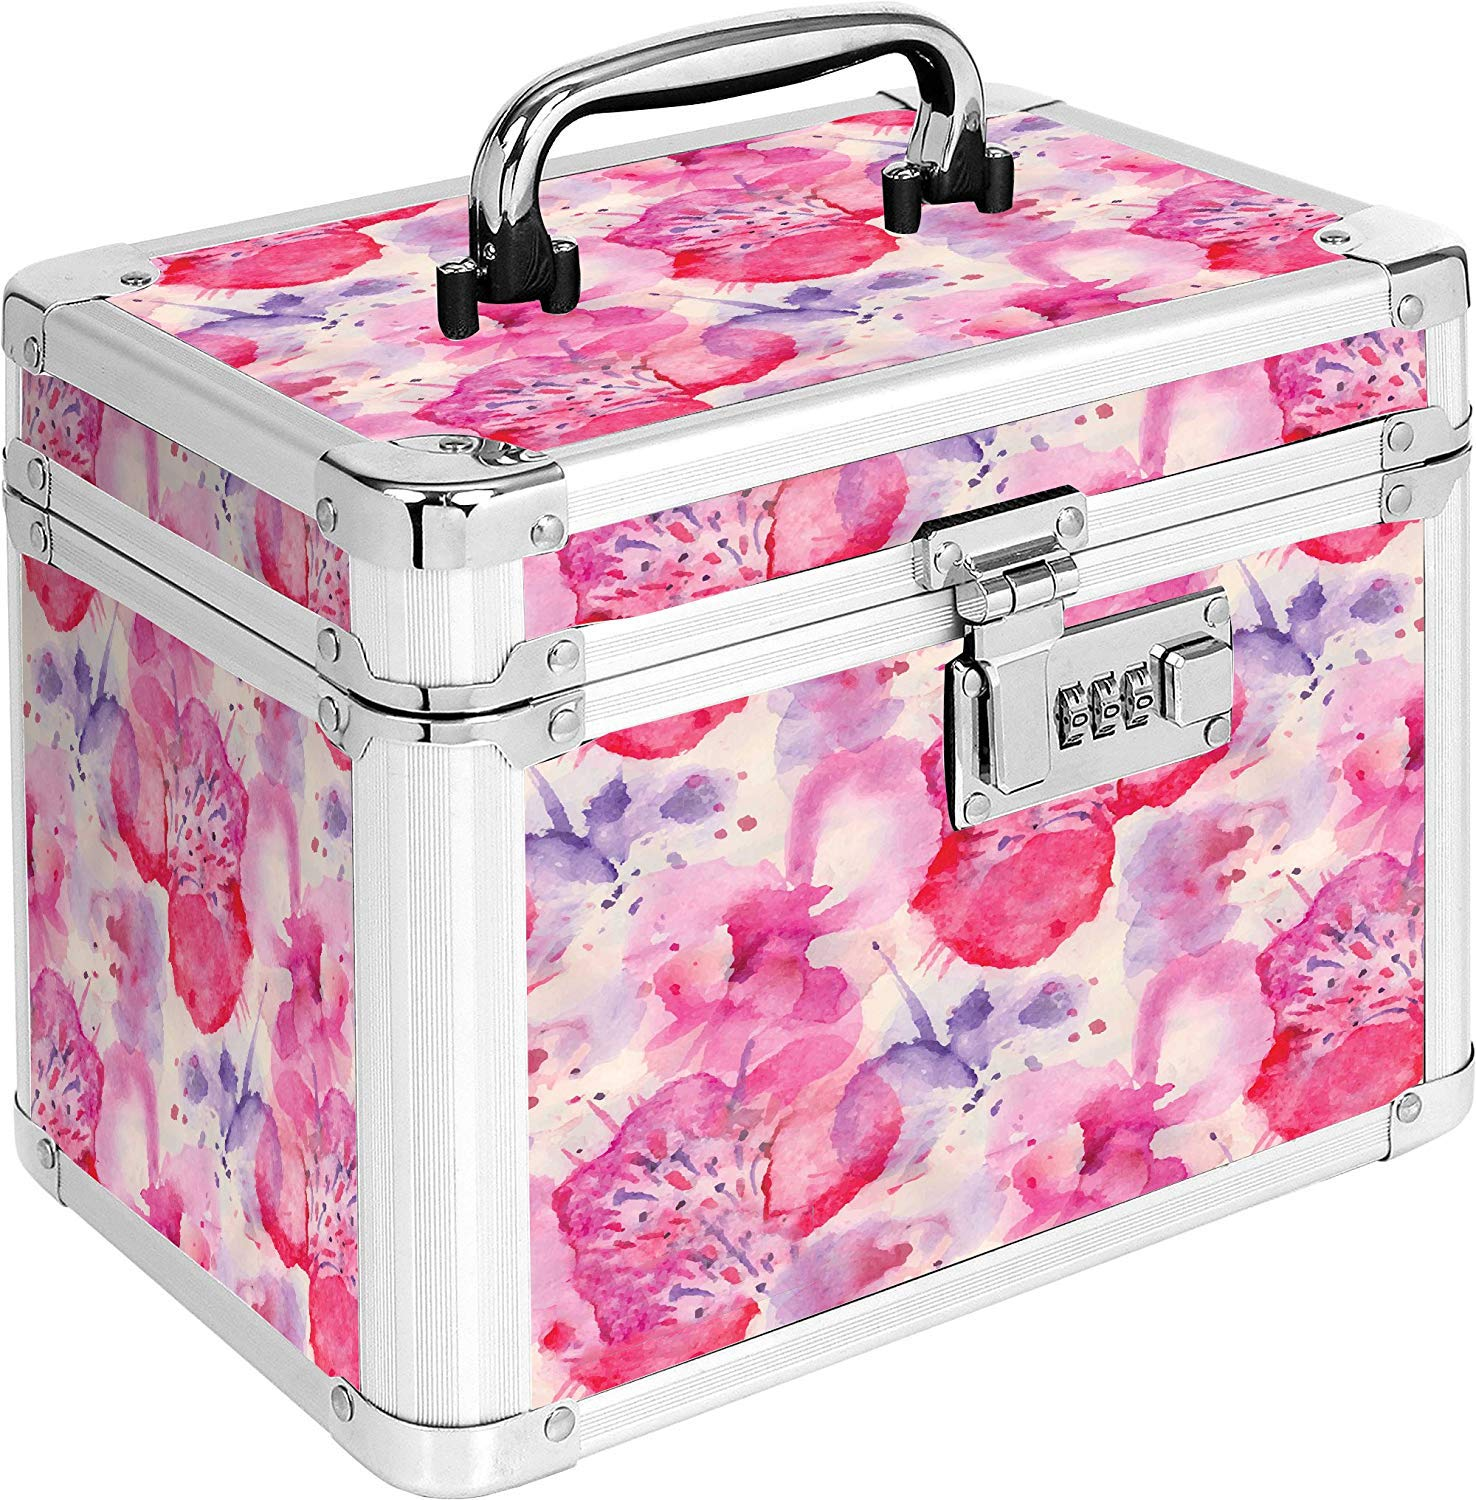 MOFUT Locking Personal Storage Box with Combination Lock and Carry Handle, Floral Design, 10 x 7.5 x 7 Inches